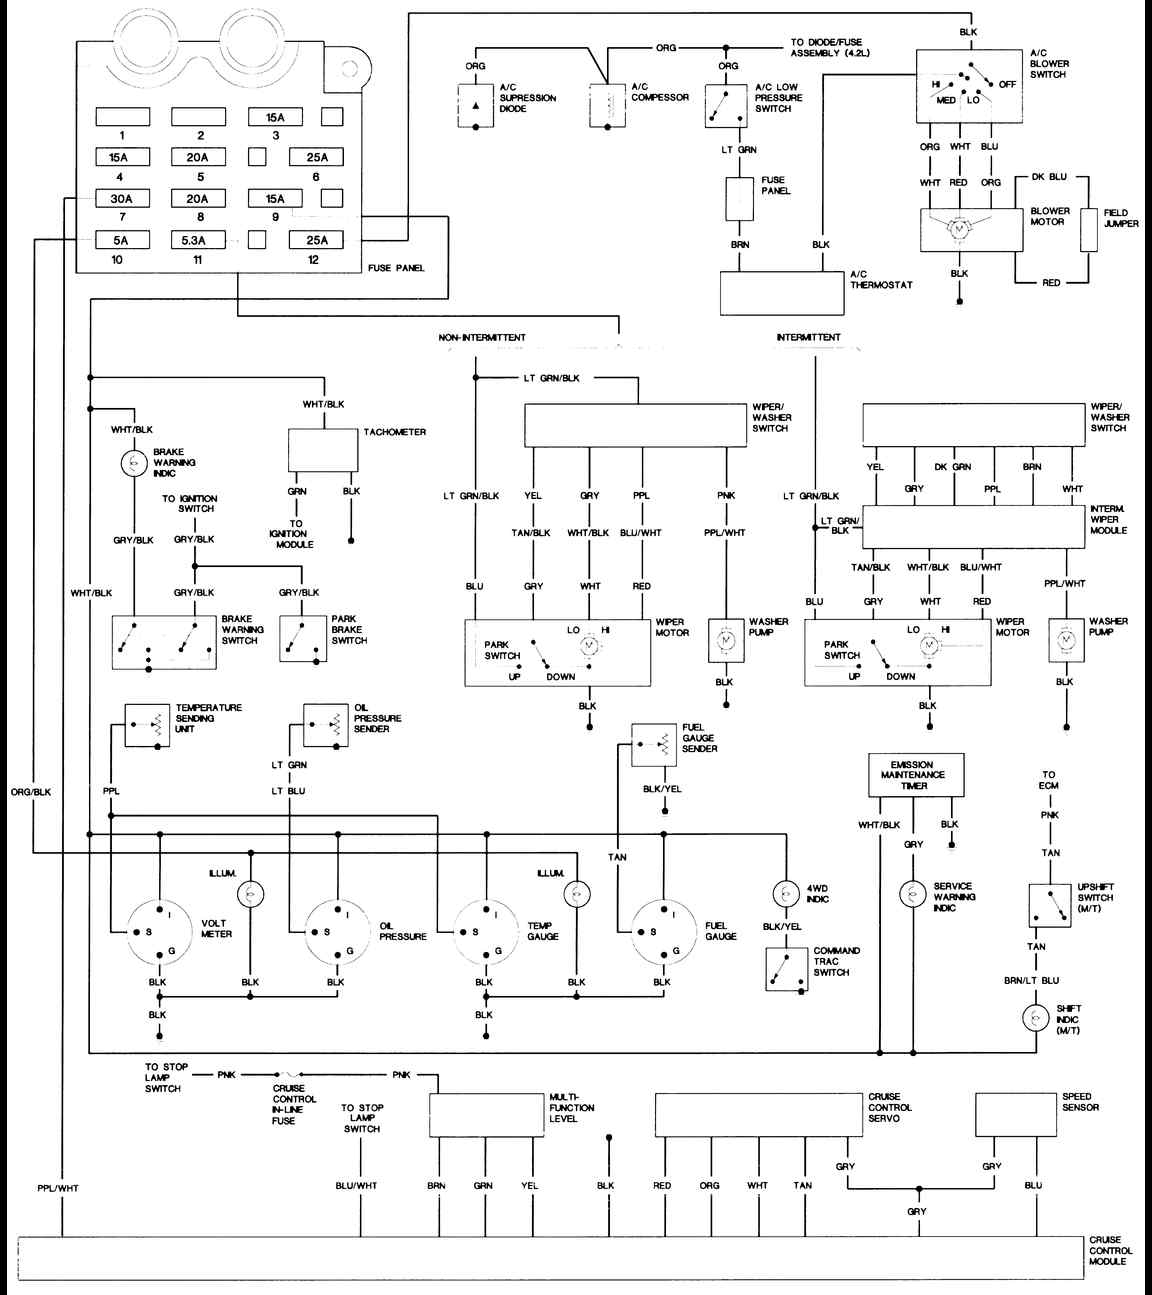 1994 Jeep Cherokee 4 0l Engine Diagram Wiring Library 1989 1988 Wrangler Body 1 Freeautomechanic